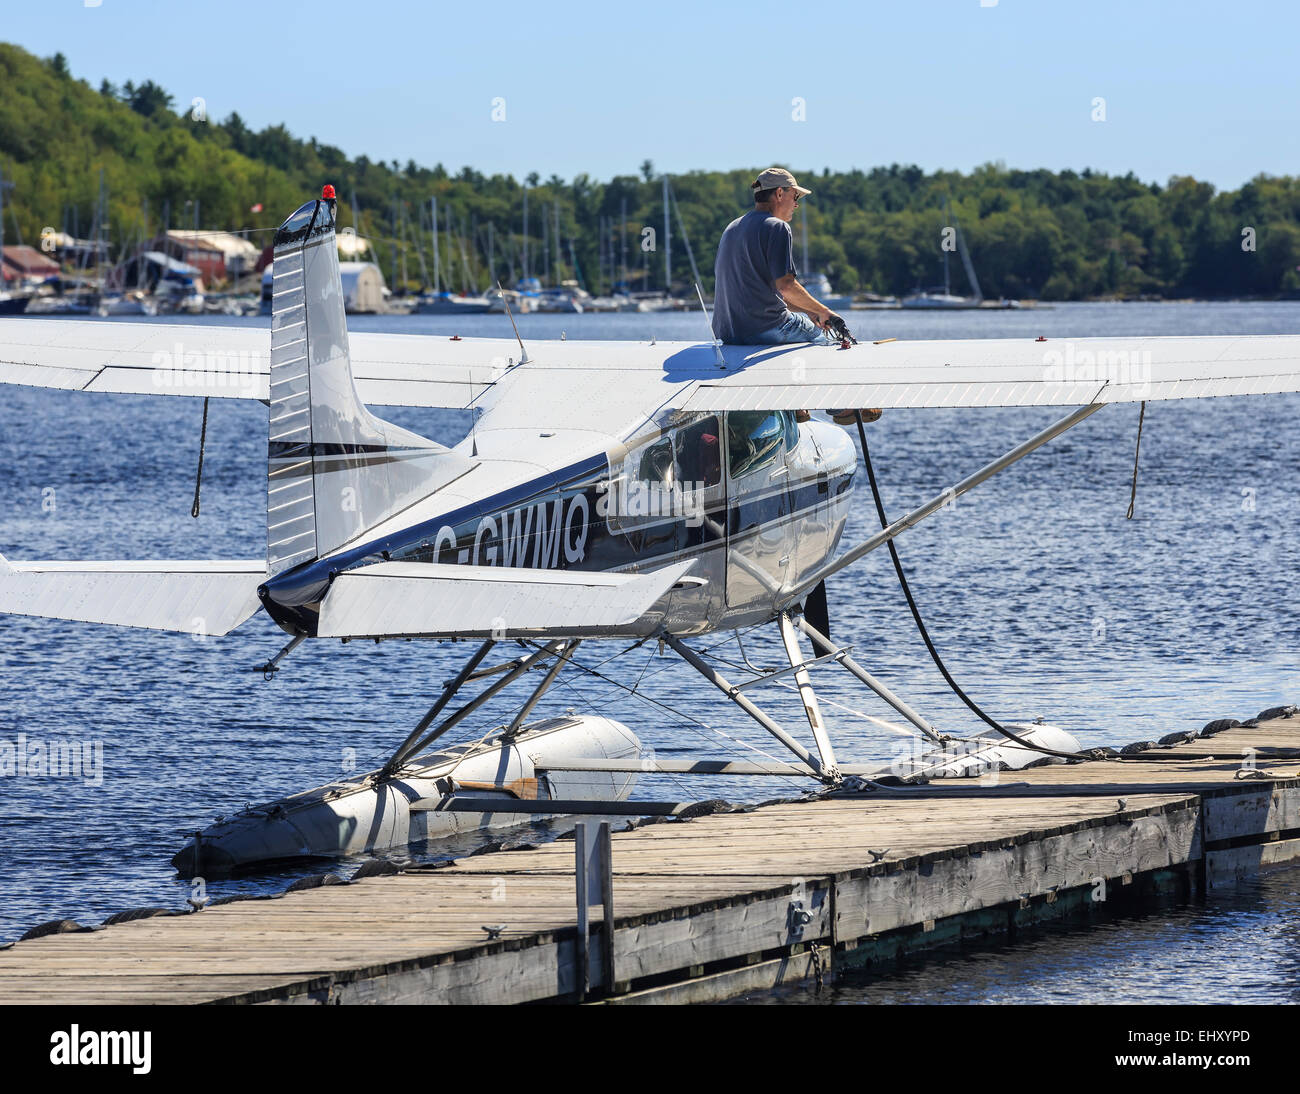 Man refueling a float plane, Parry Sound, Ontario, Canada - Stock Image